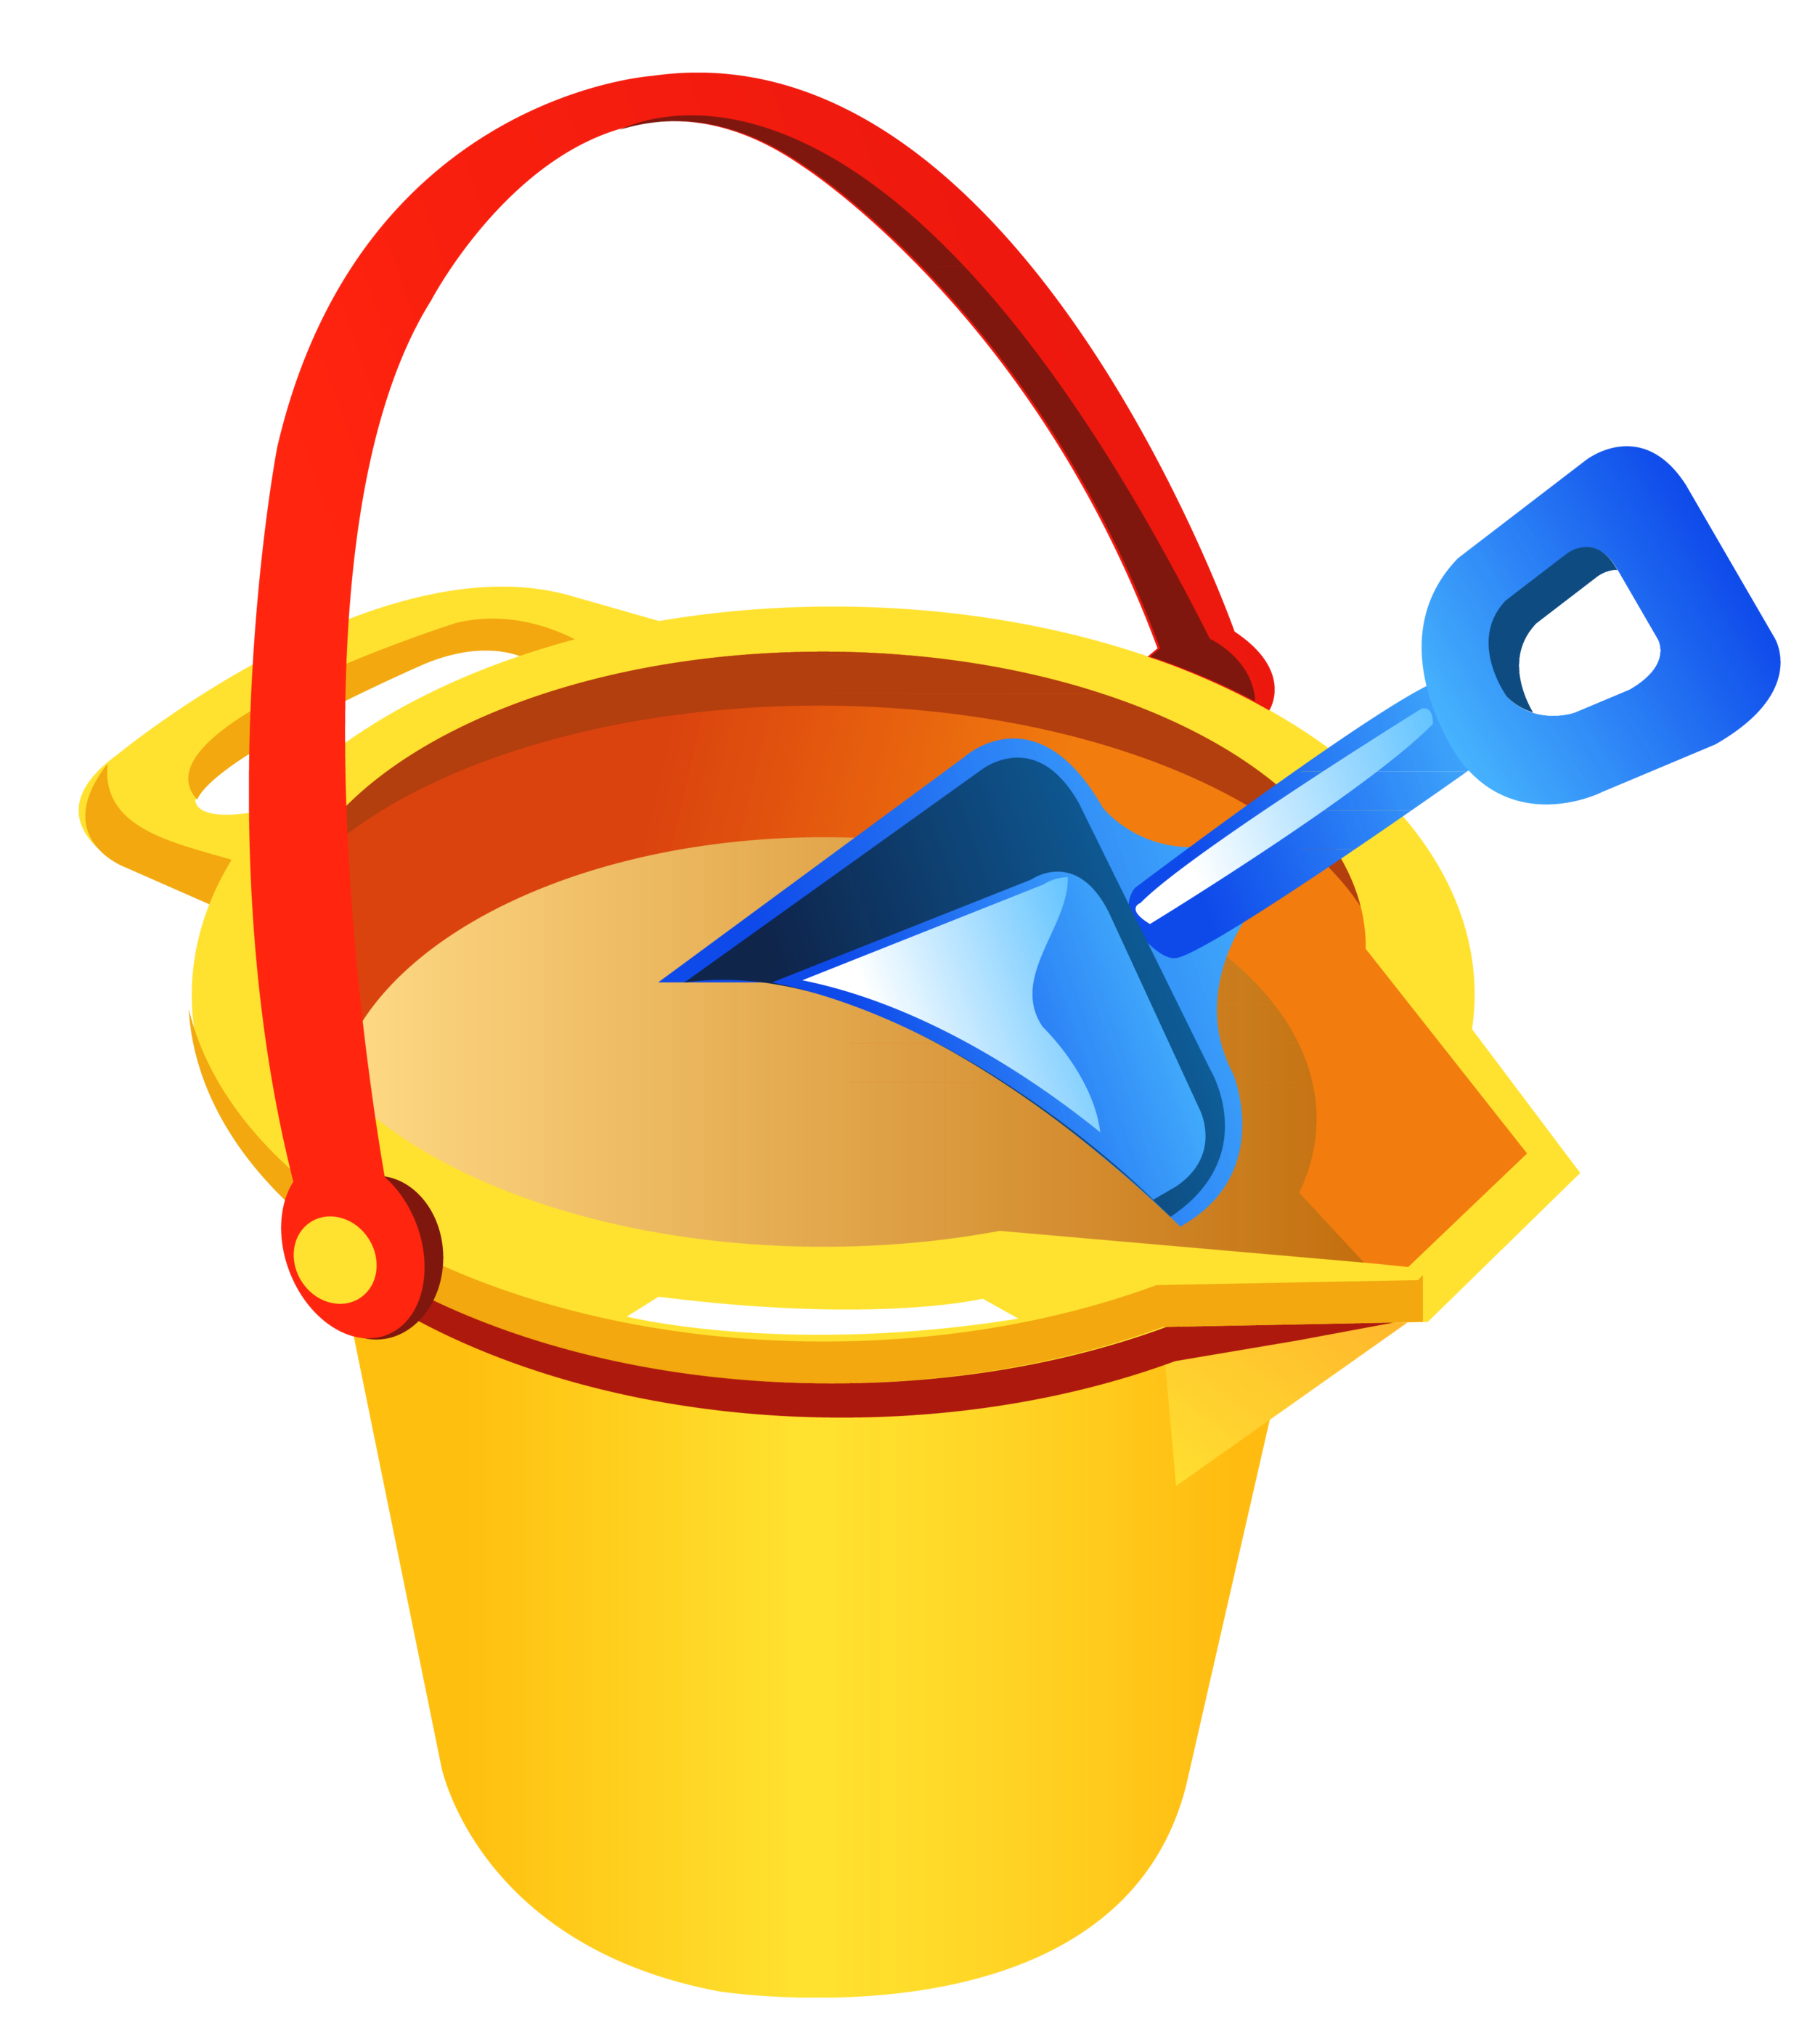 Transparent_Beach_Bucket_and_Shovel_PNG_Clipart.png